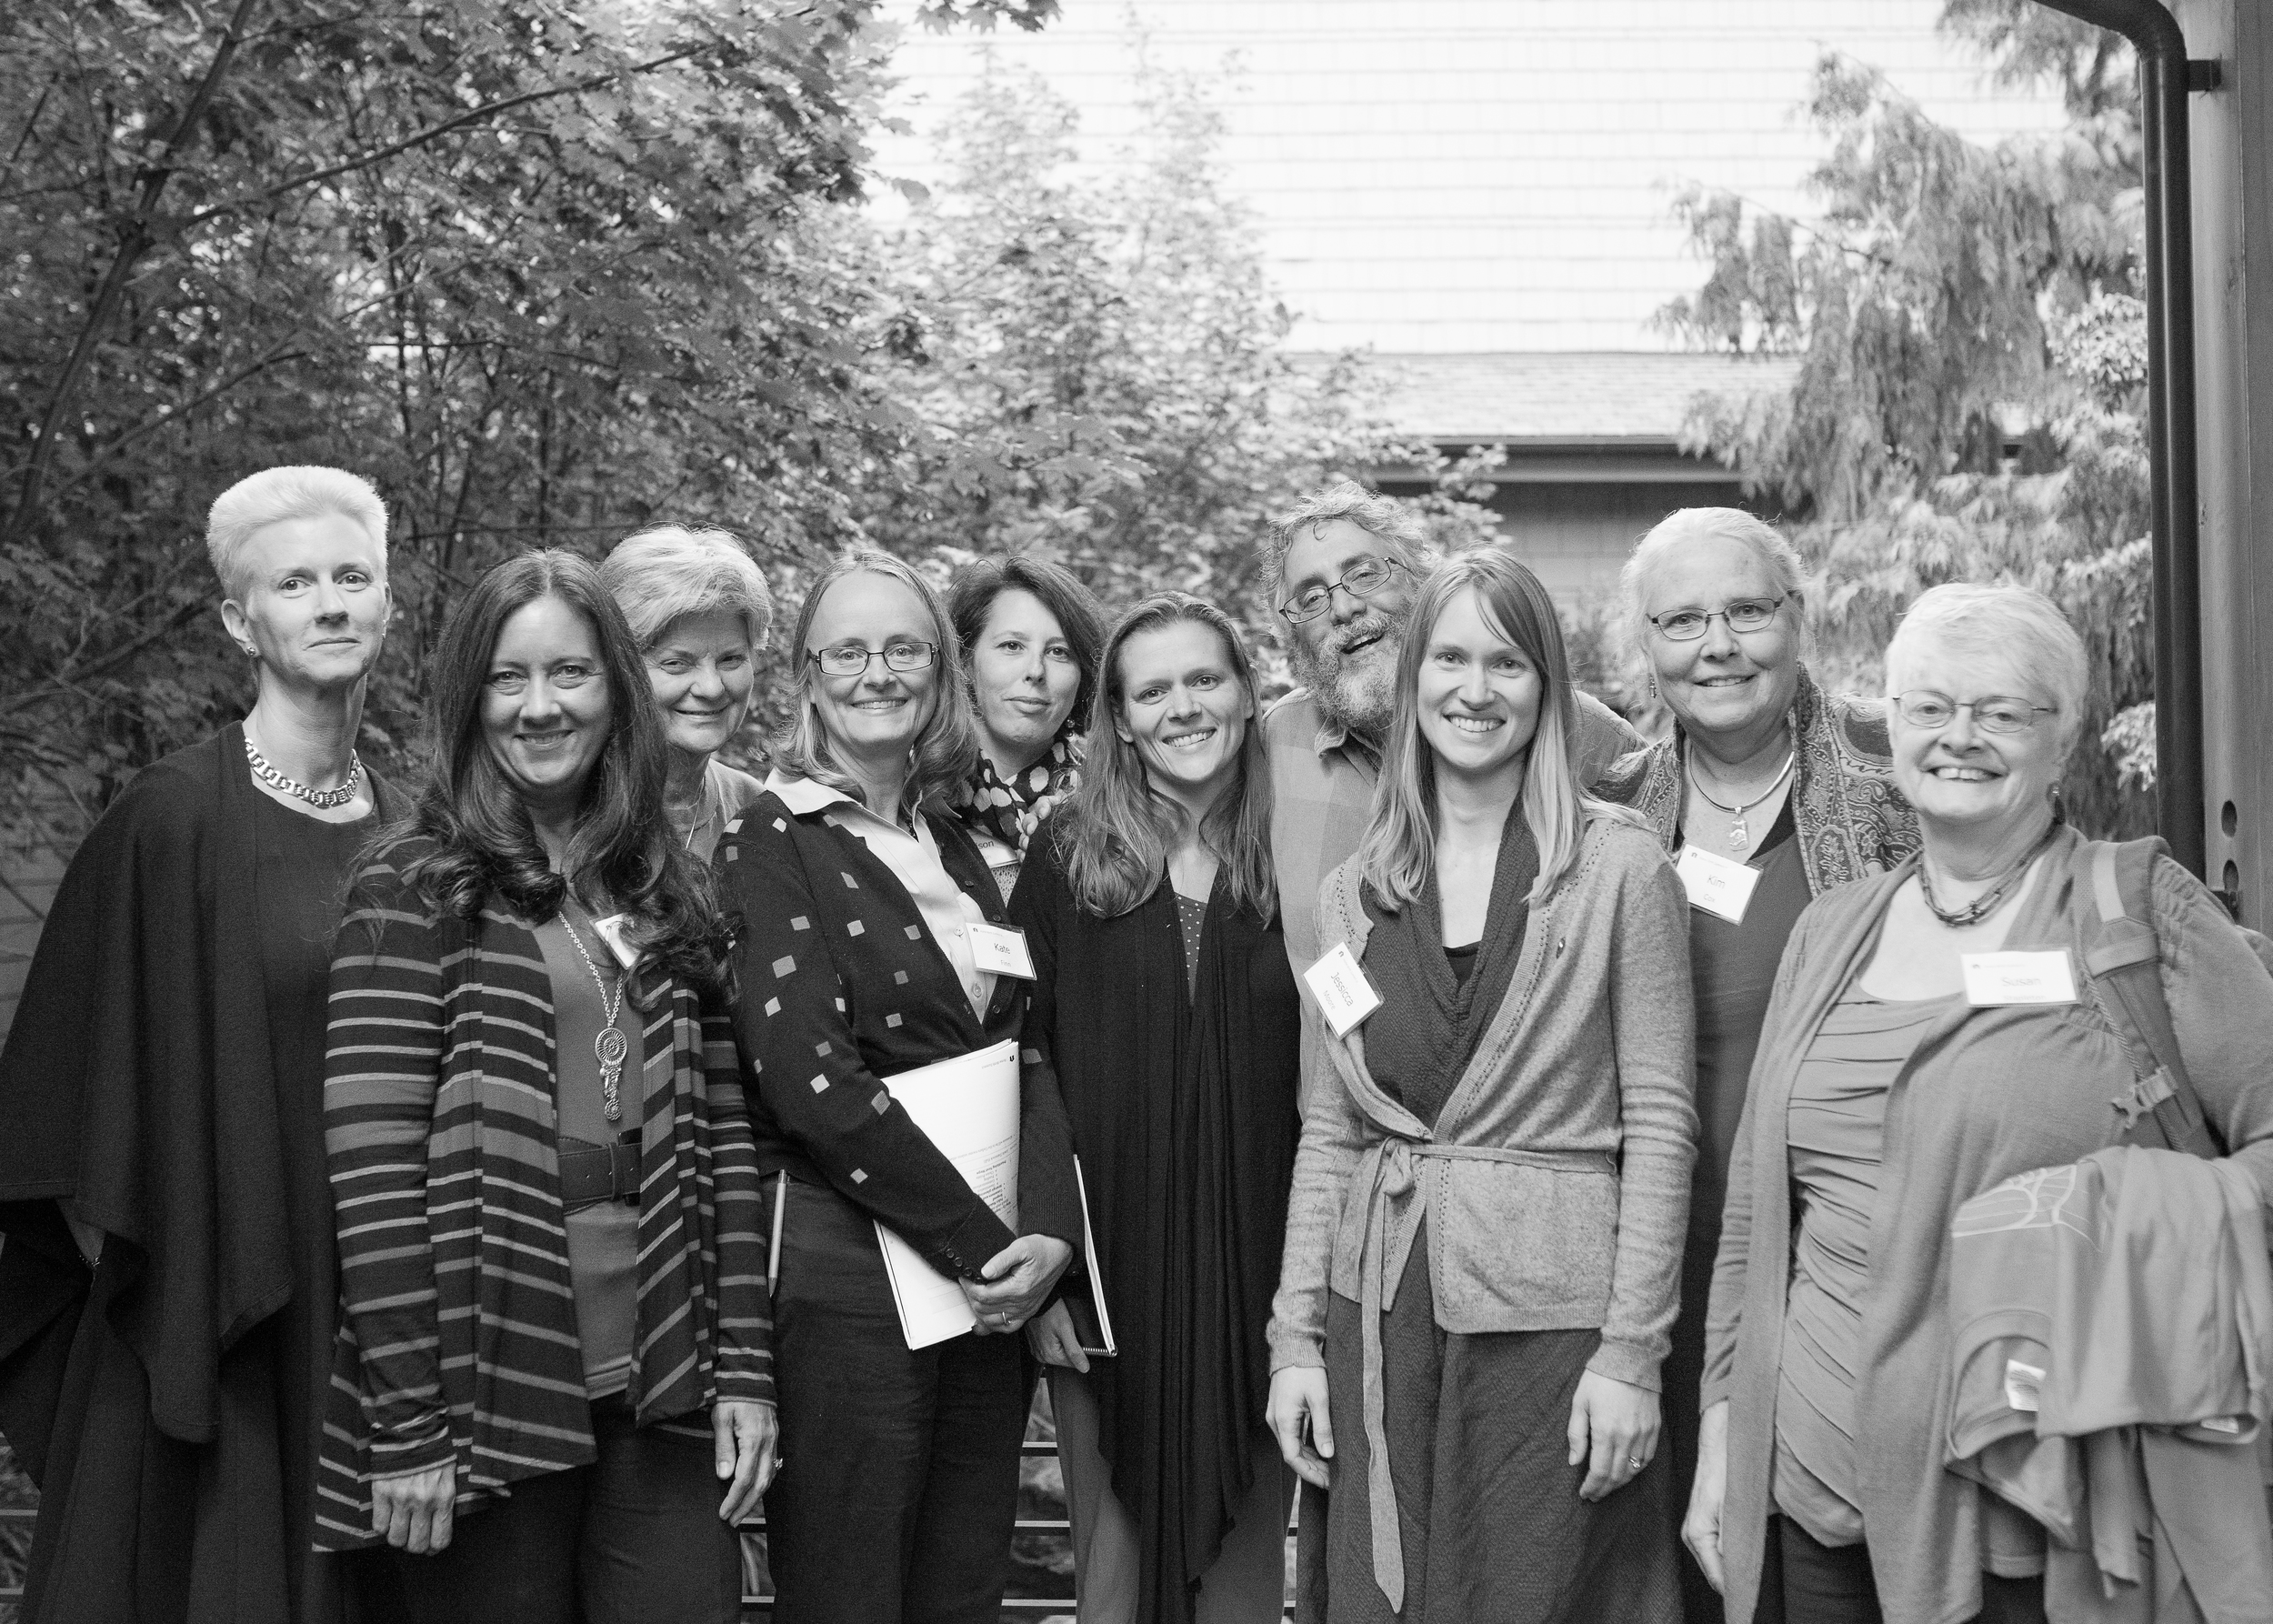 A group of hospital birth providers who had their own children at home. I met them at the Home Birth Consensus Summit.